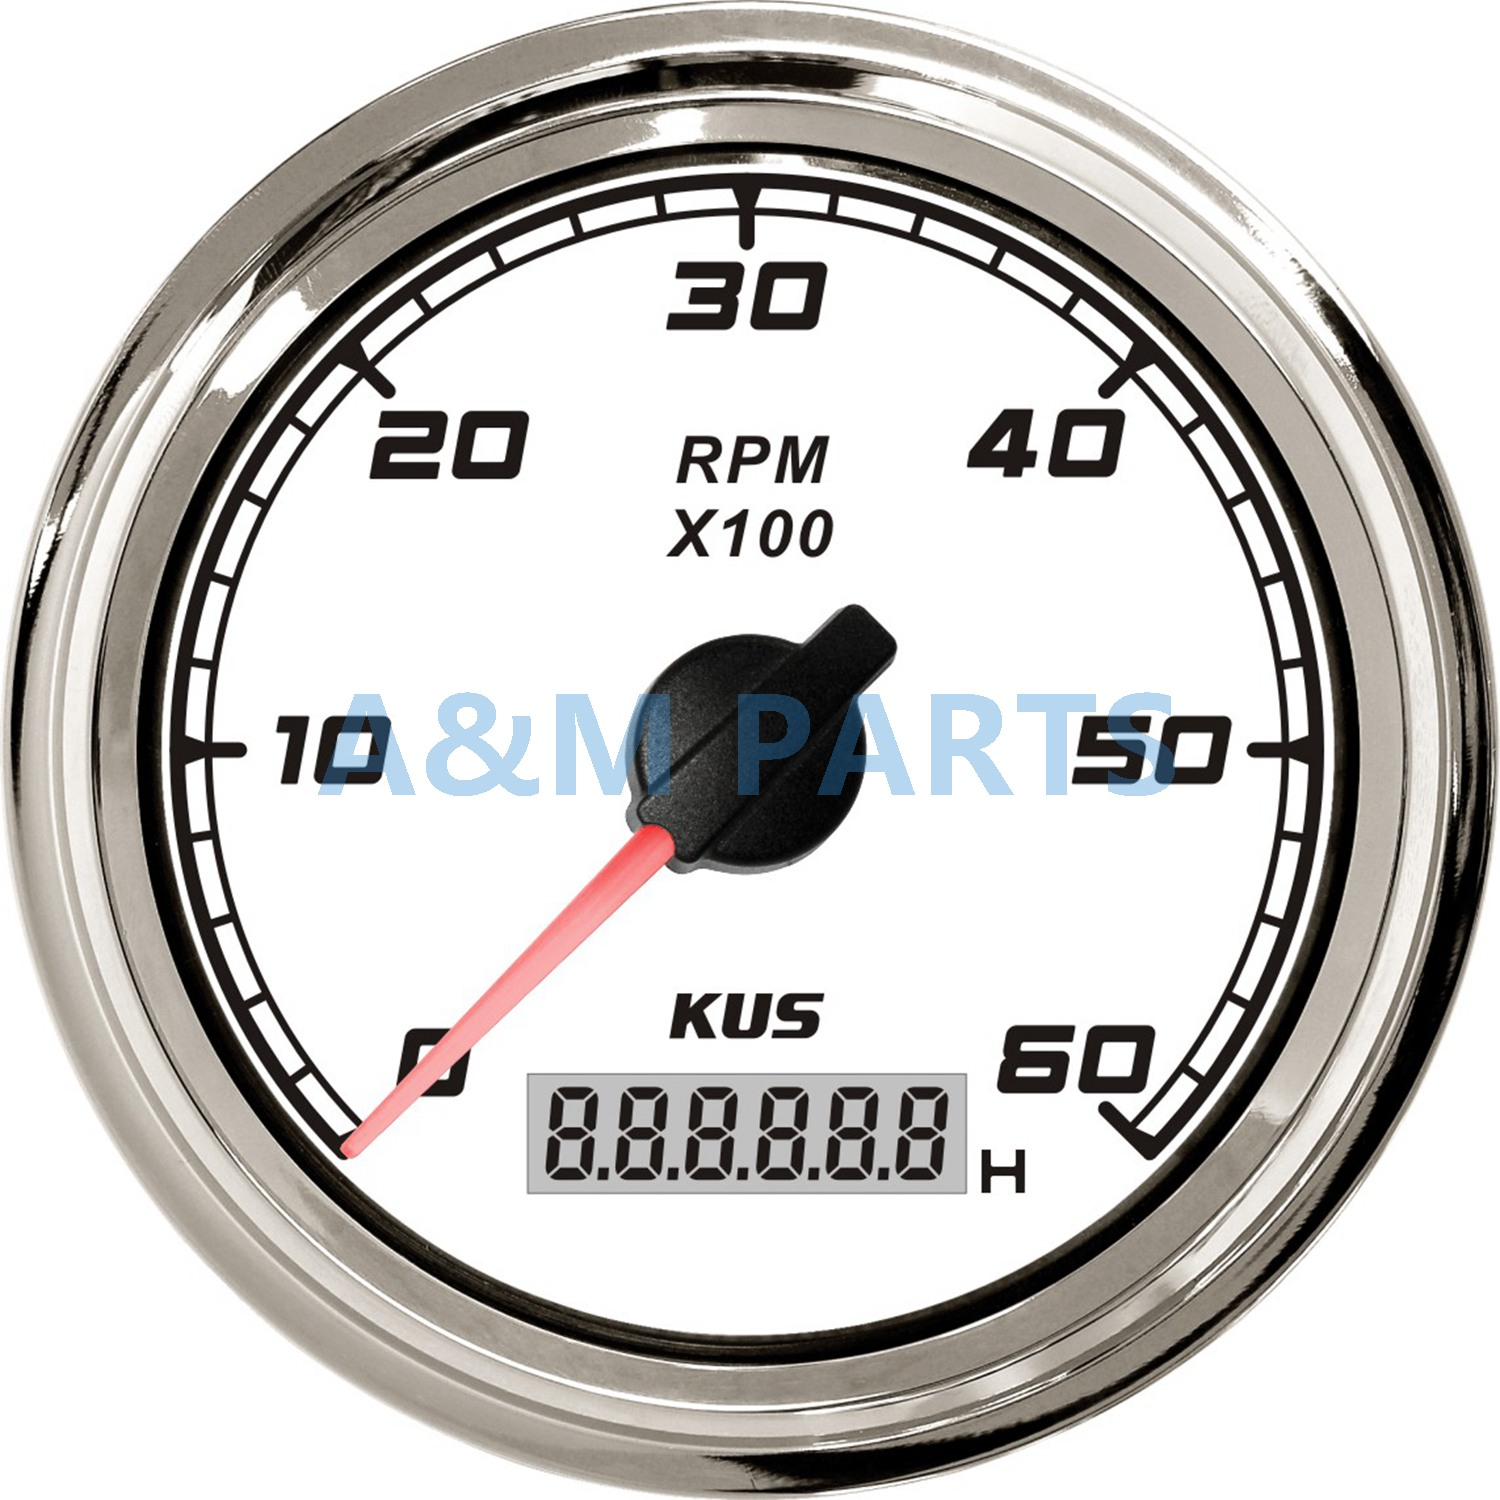 KUS Marine Tachometer Car Truck Boat Tacho Gauge With LCD Digital Hourmeter Waterproof 0-6000 RPM Speed Ration 0.5-250 85mm kus marine outboard tachometer with led hourmeter boat truck car rv waterproof rpm meter 6000 rpm 85mm speed ration 1 10